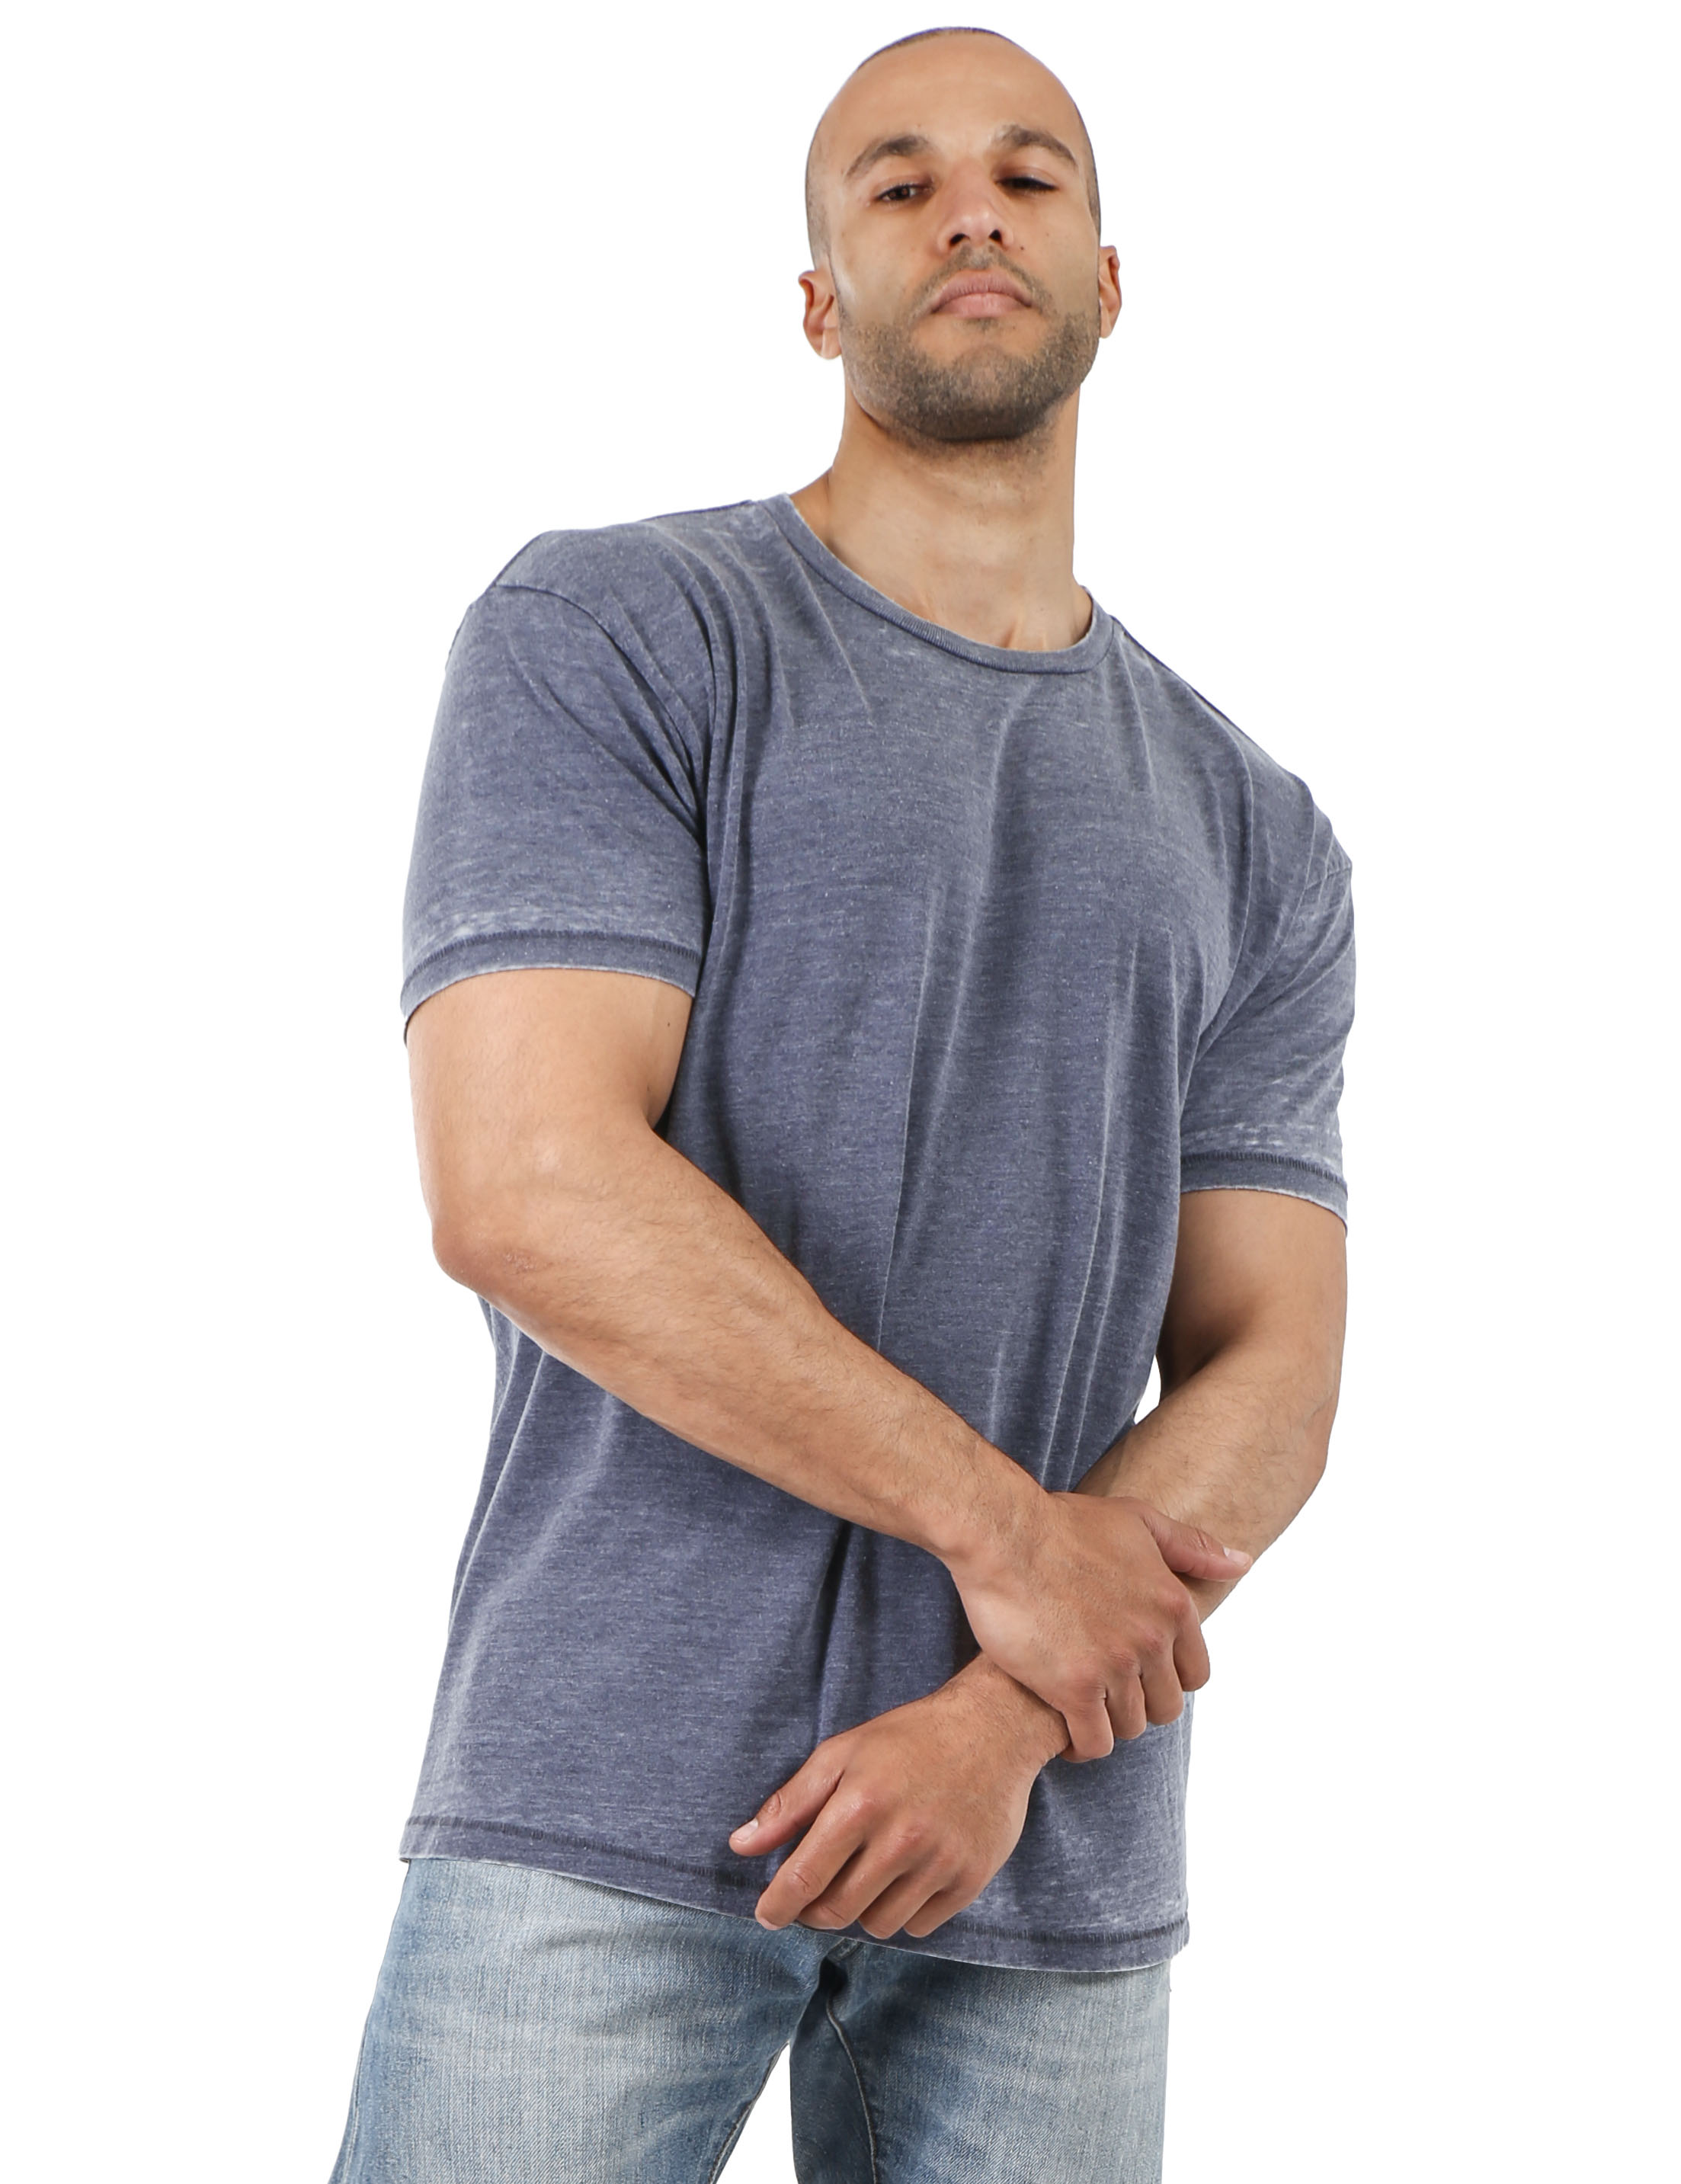 Mens-Vintage-T-Shirts-Washed-Burnout-Fade-Short-Sleeve-Basic-Crew-Neck-Tee thumbnail 18